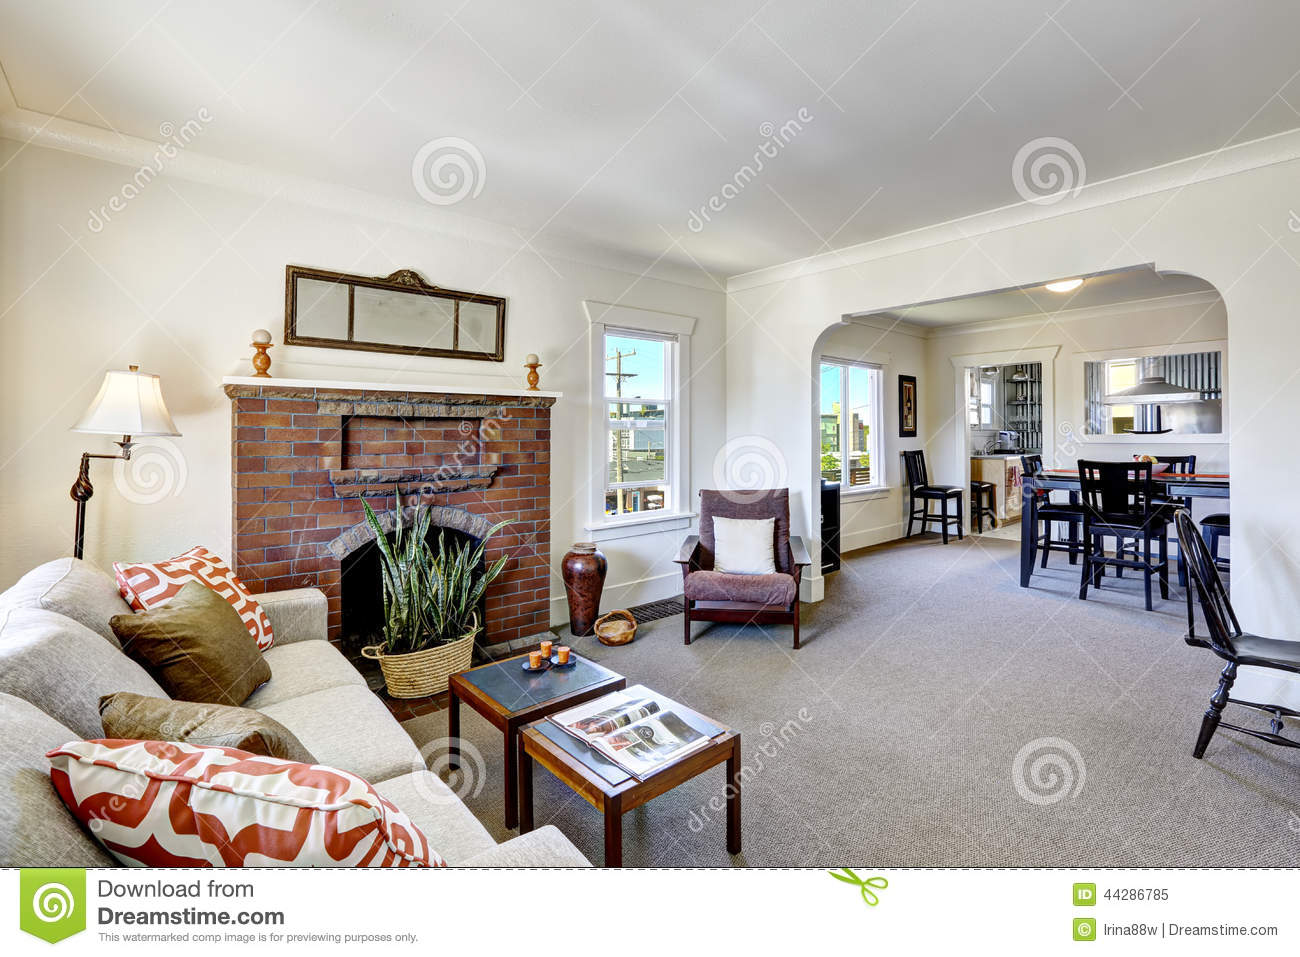 Room with brick fireplace in old american house stock for American house interior decoration